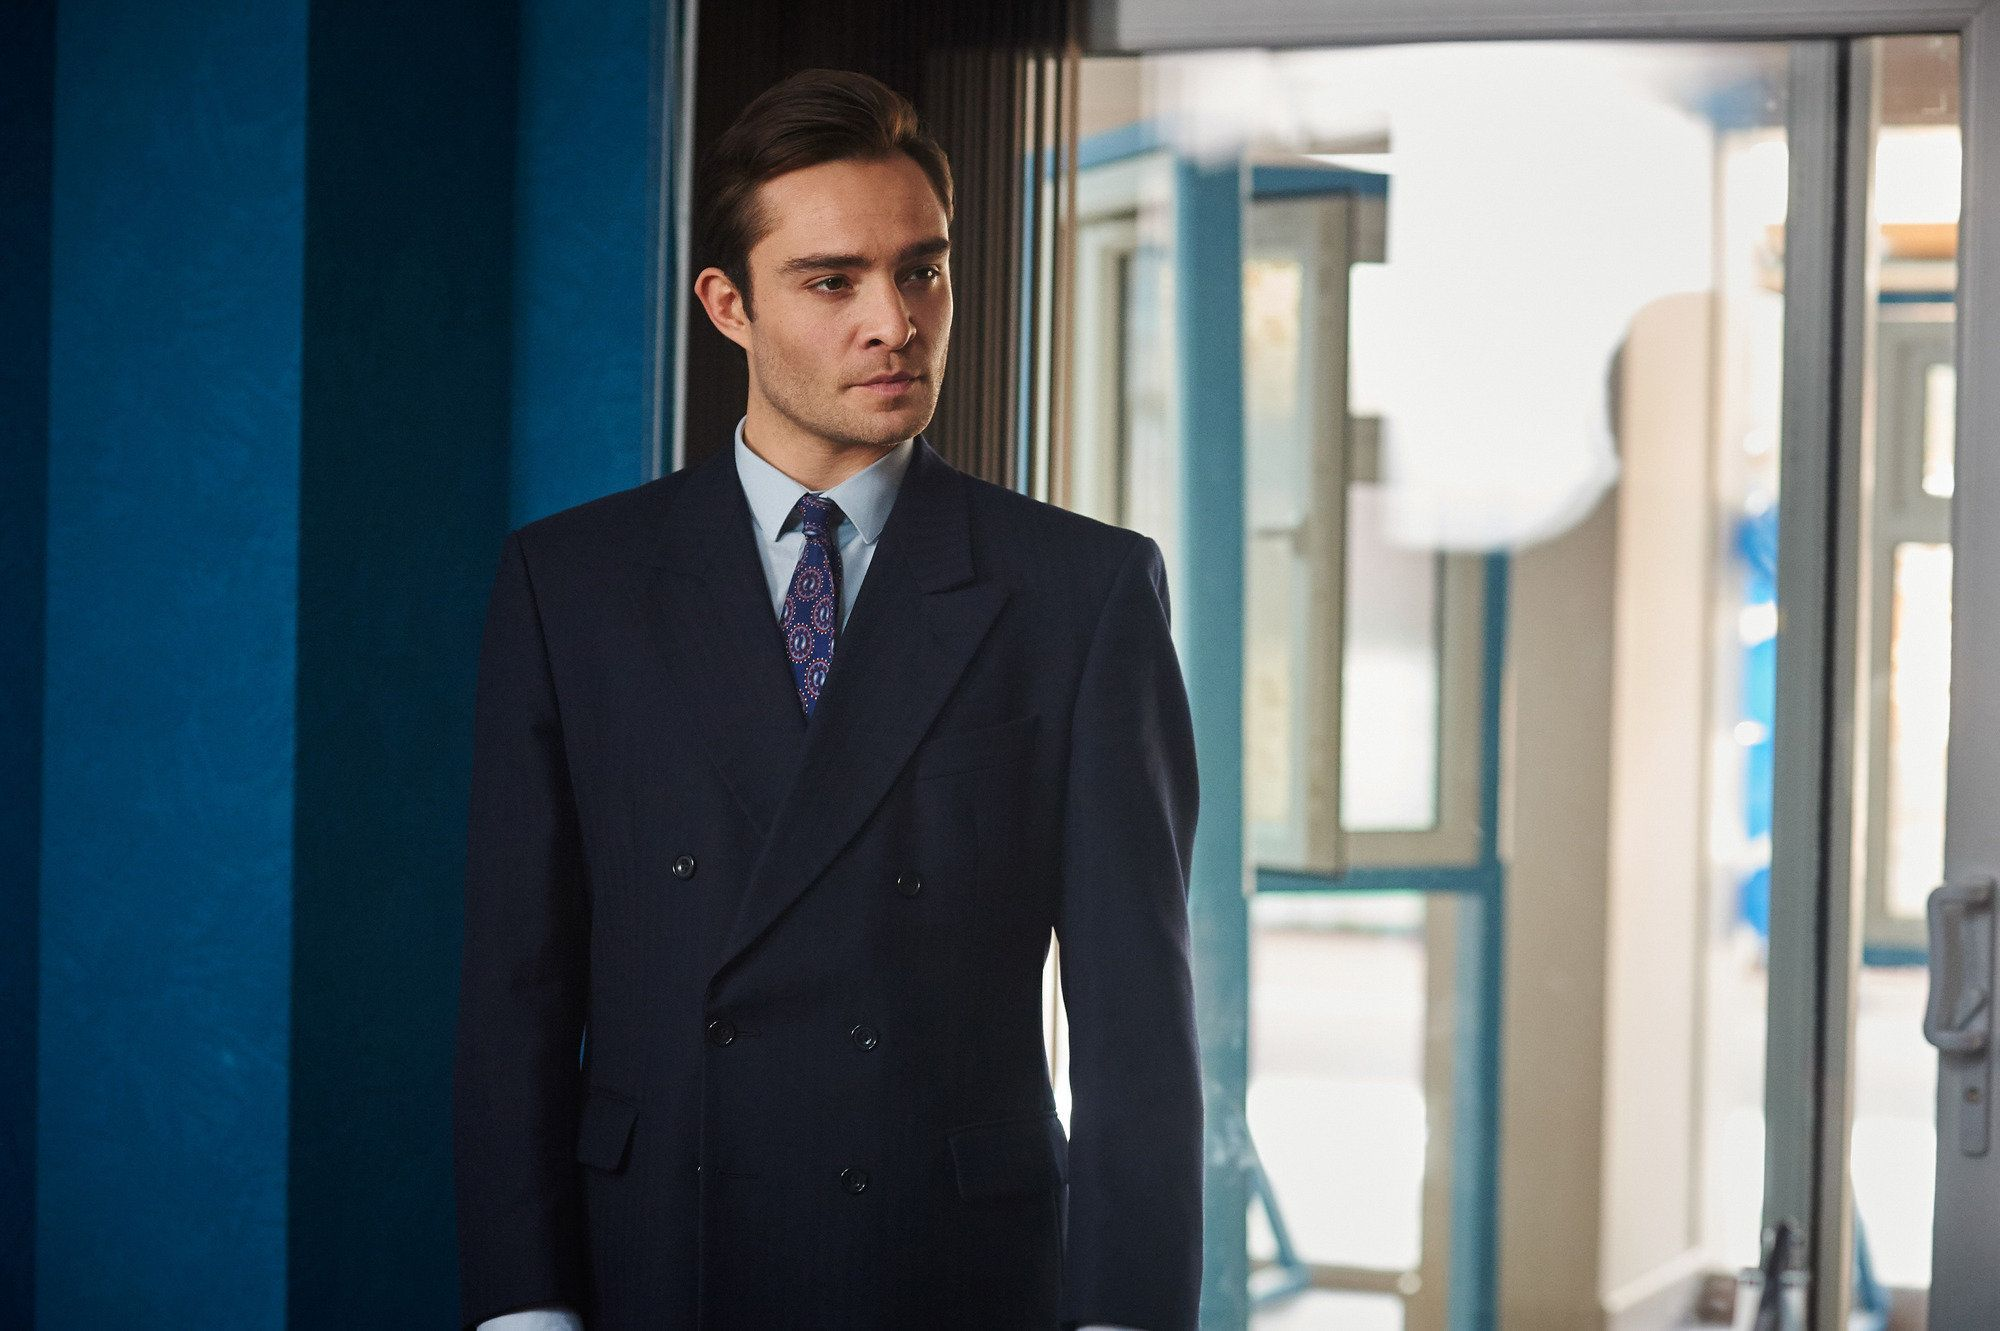 Ed Westwick says he feels better now he has a failure behind